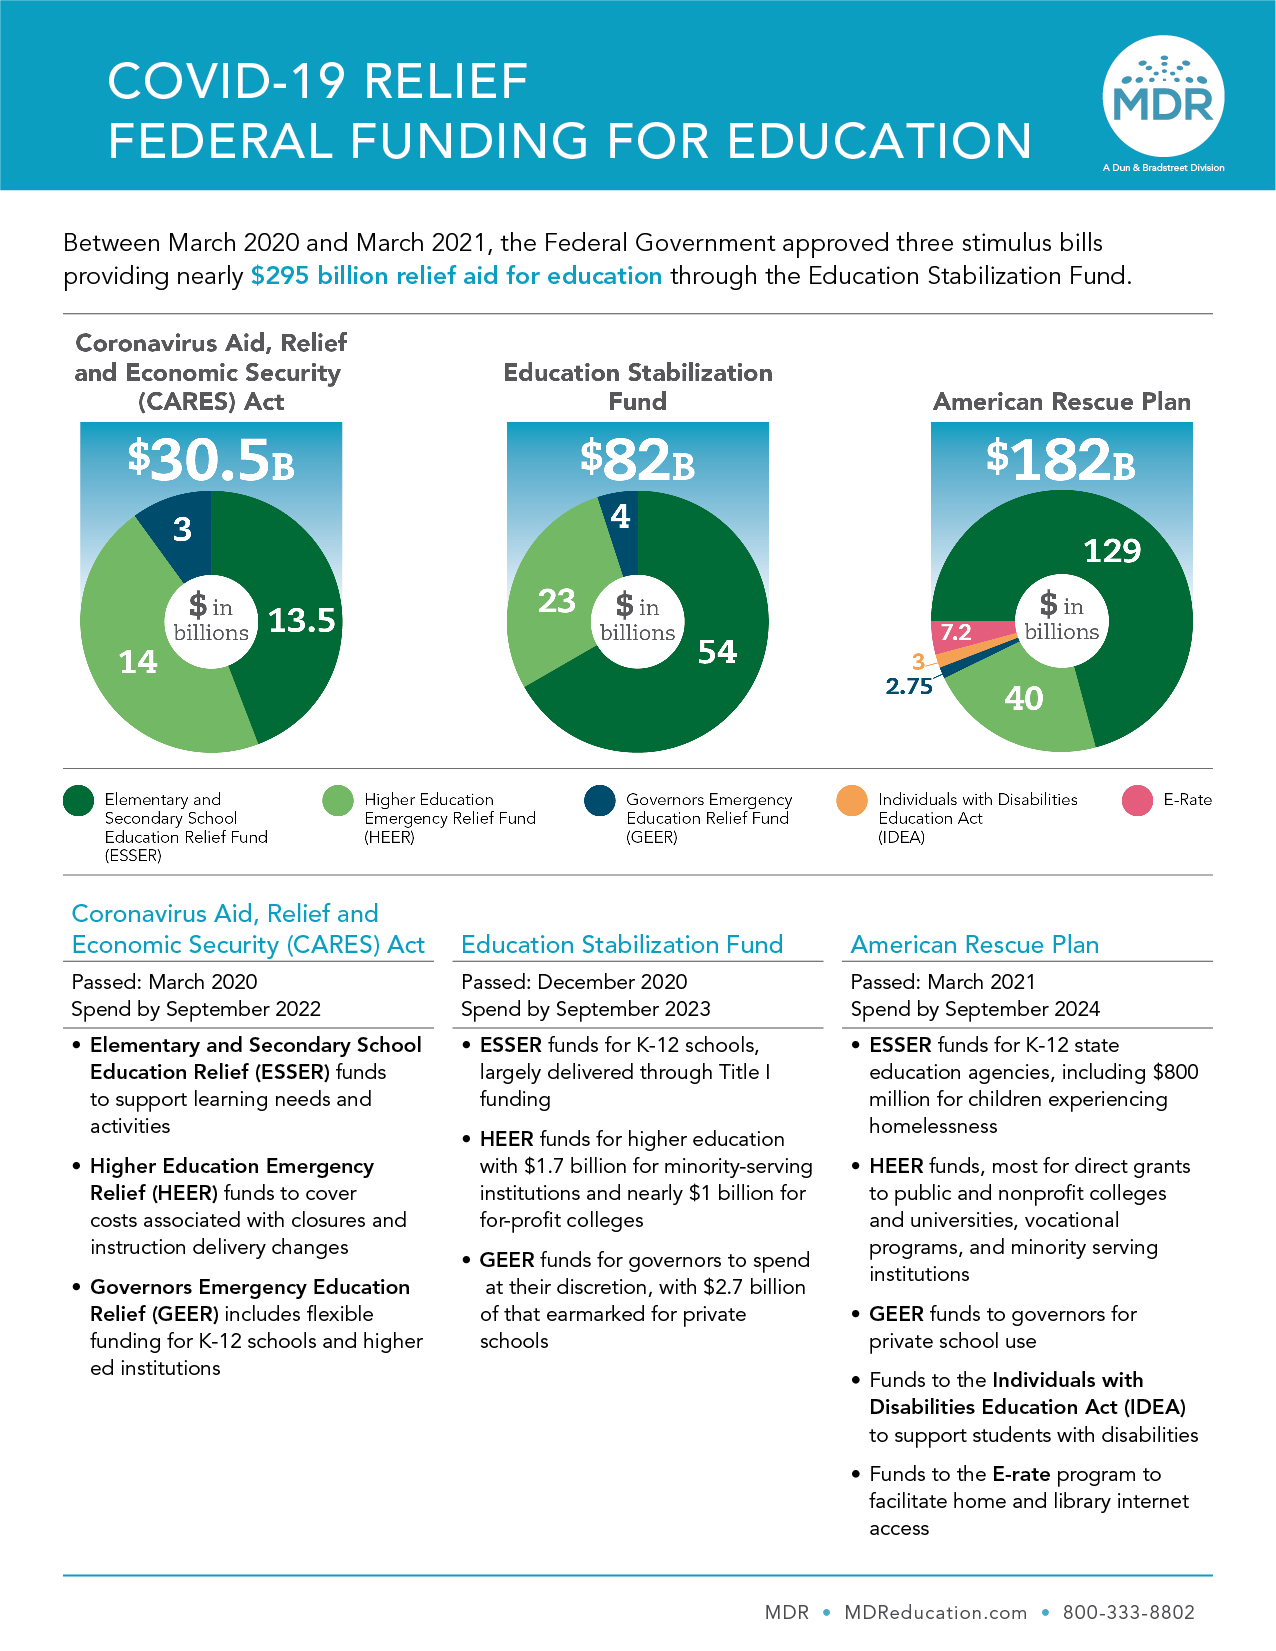 COVID-19 Funds Infographic